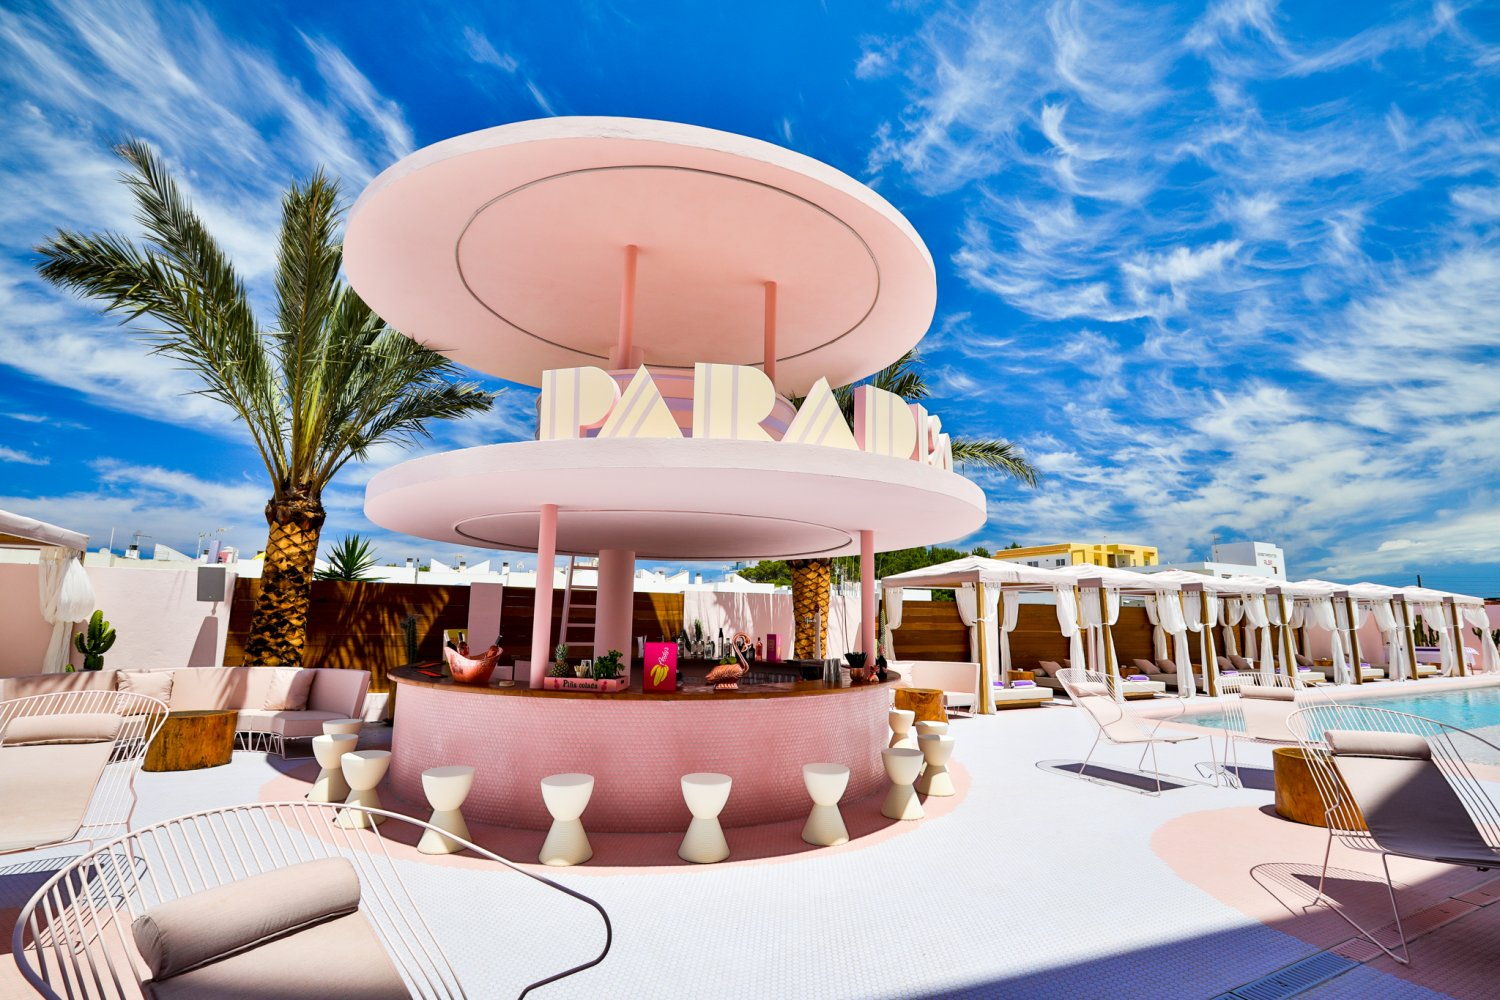 Clubbing Cool Stylish S Only Luxury New Hotel Offering Beautiful Art Deco Style And Exclusive Services In The Bay Of San Antonio